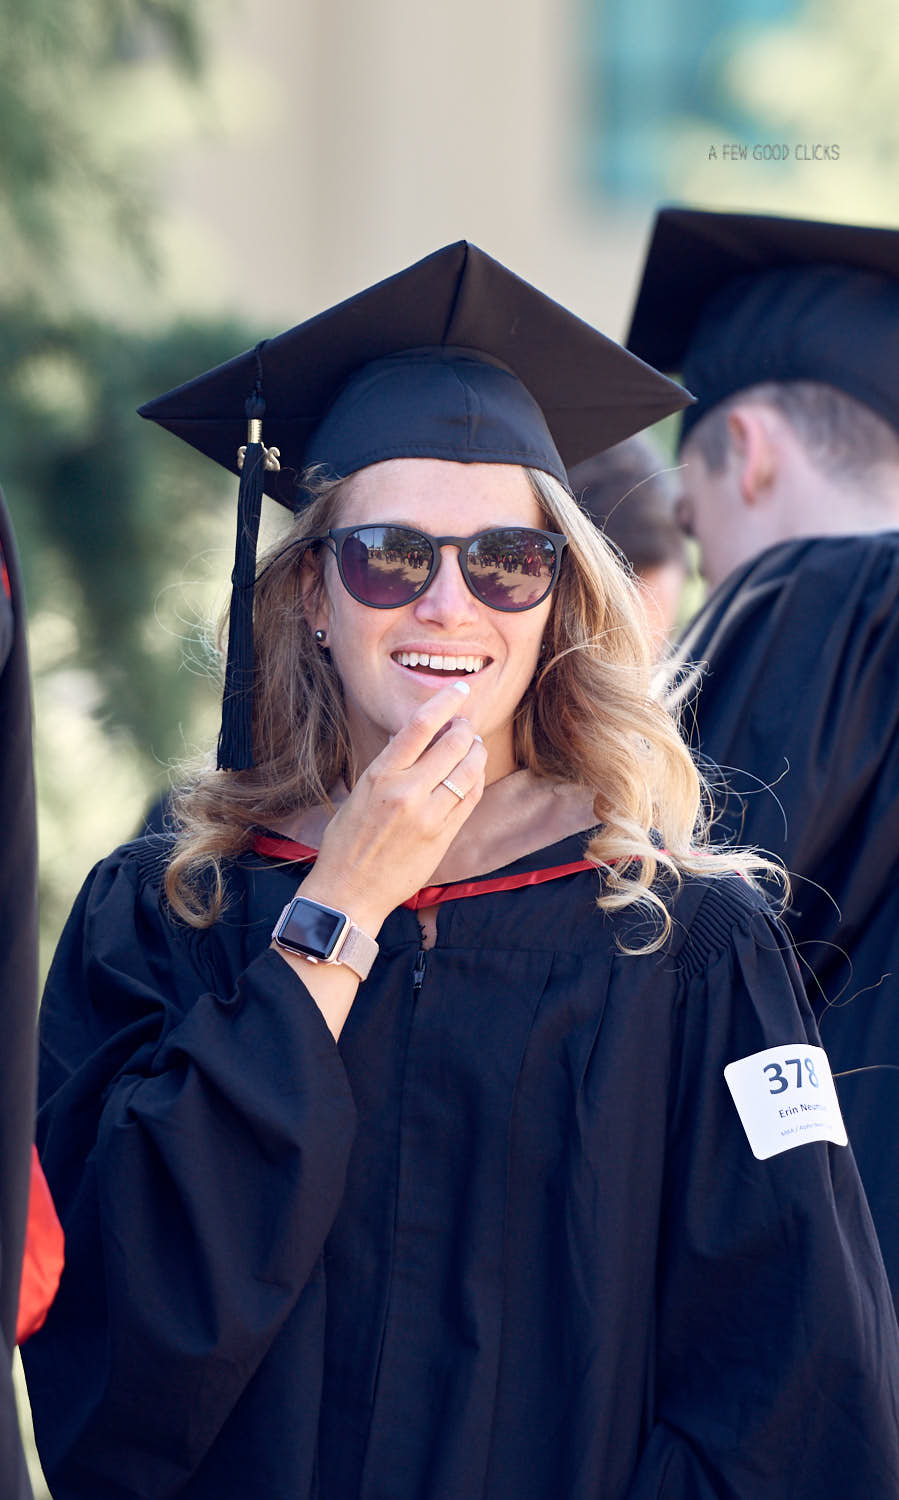 stanford-graduation-ceremony-photography-by-a-few-good-clicks+31.jpg